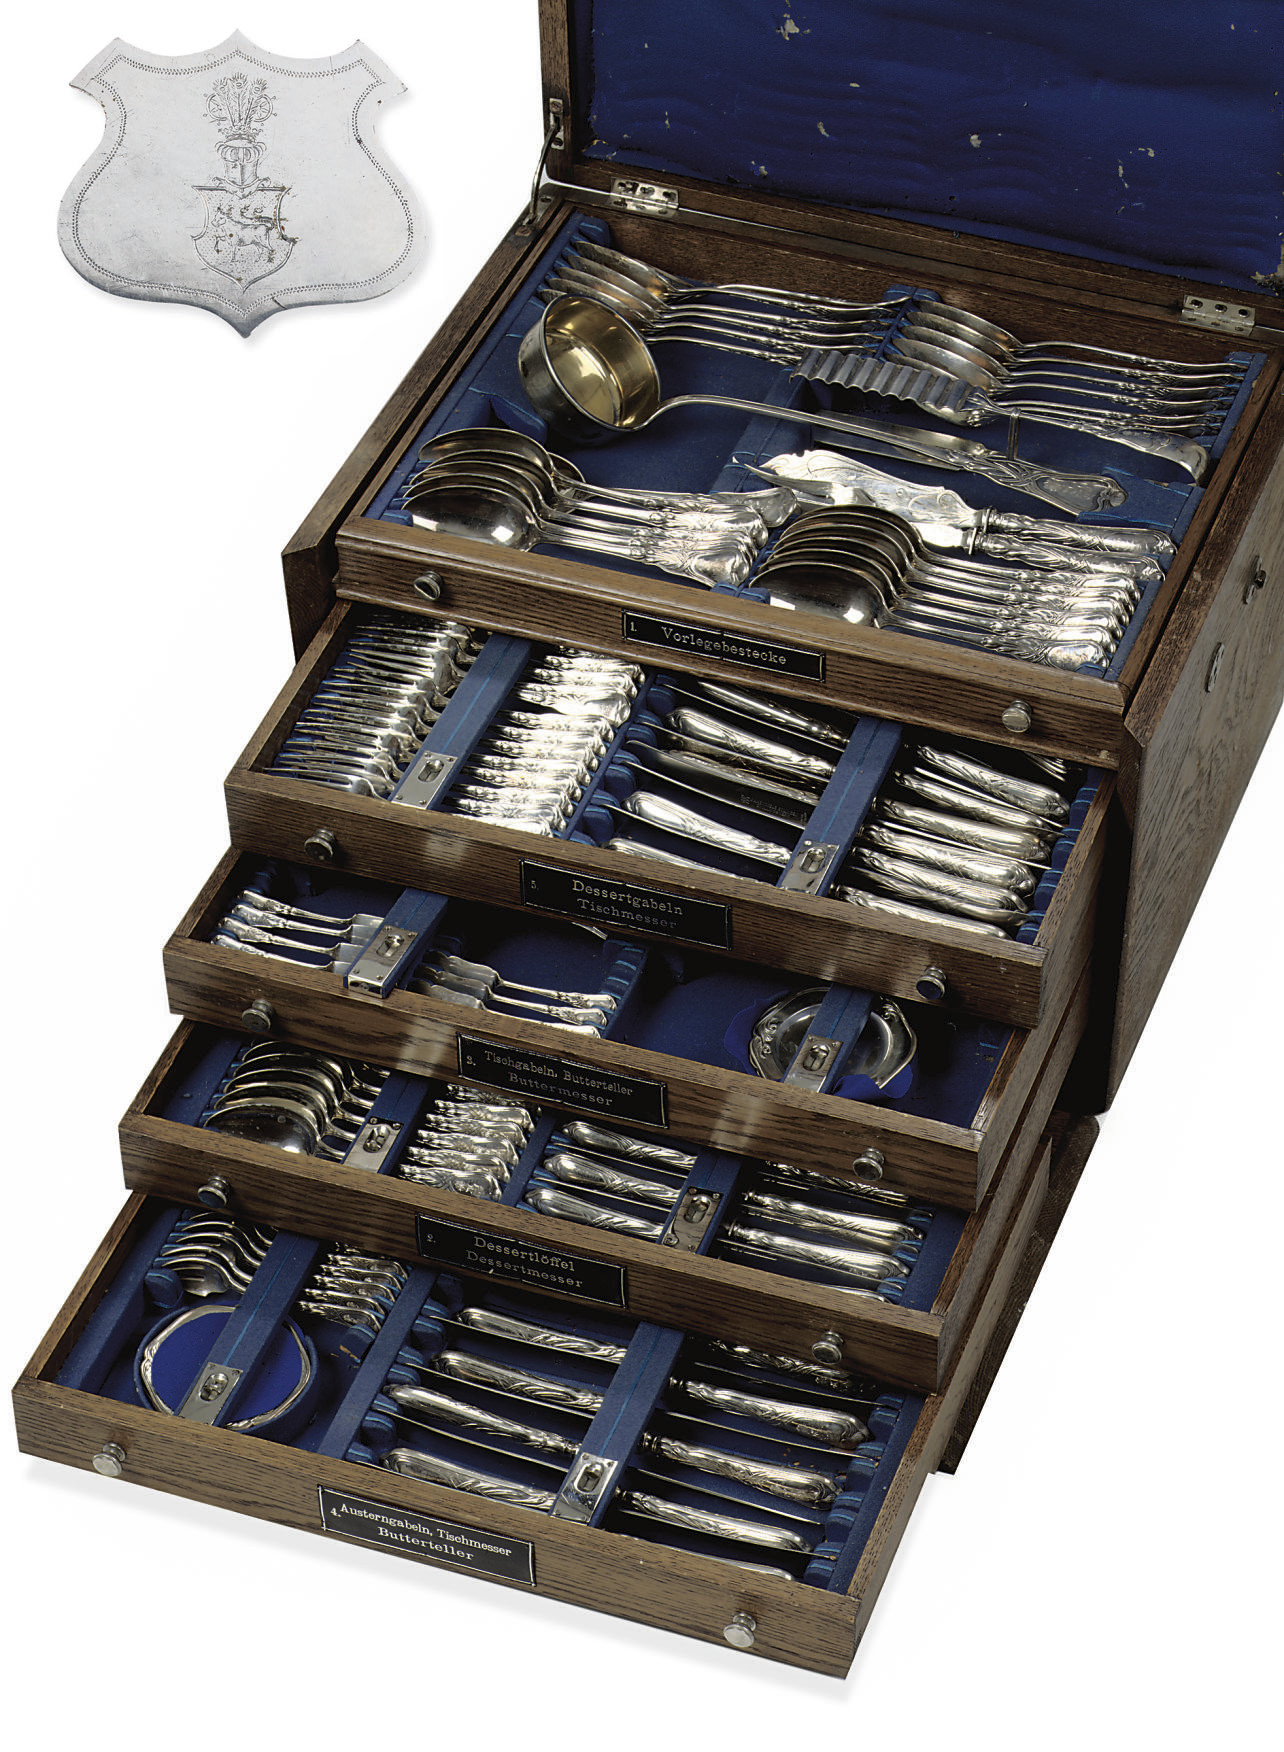 An German flatware service